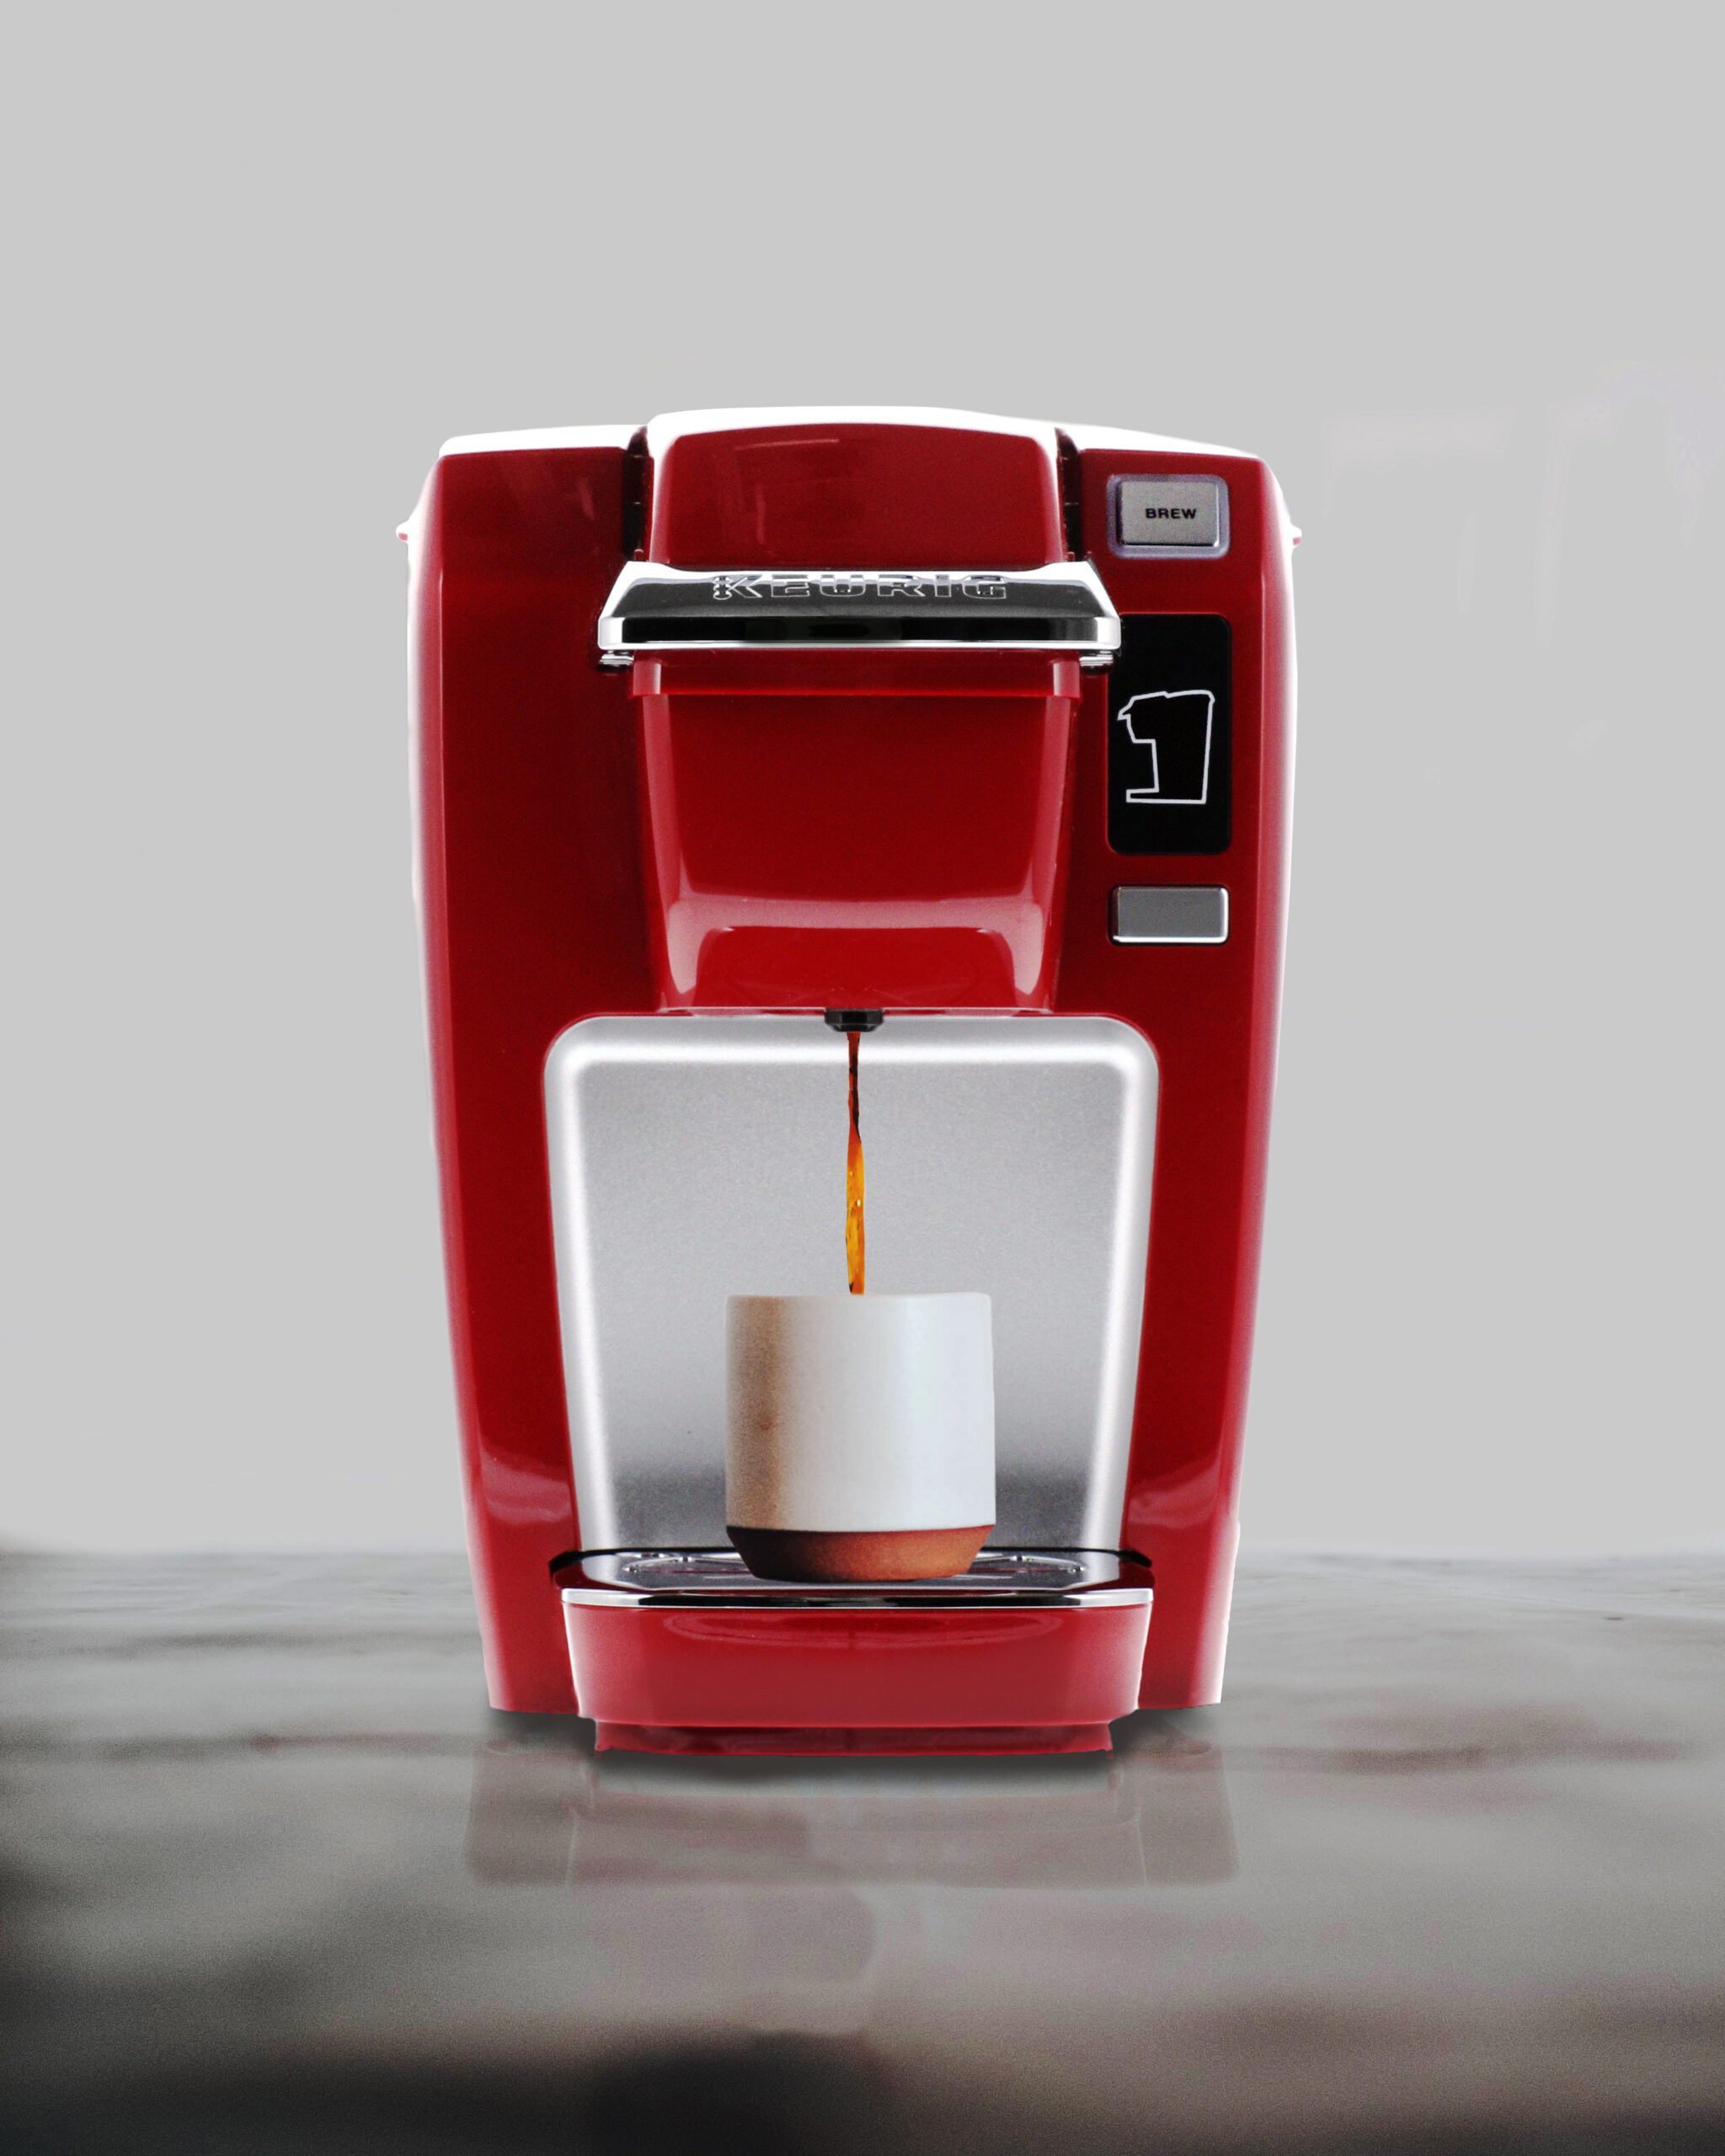 Advertising Product Image of Coffee Machine